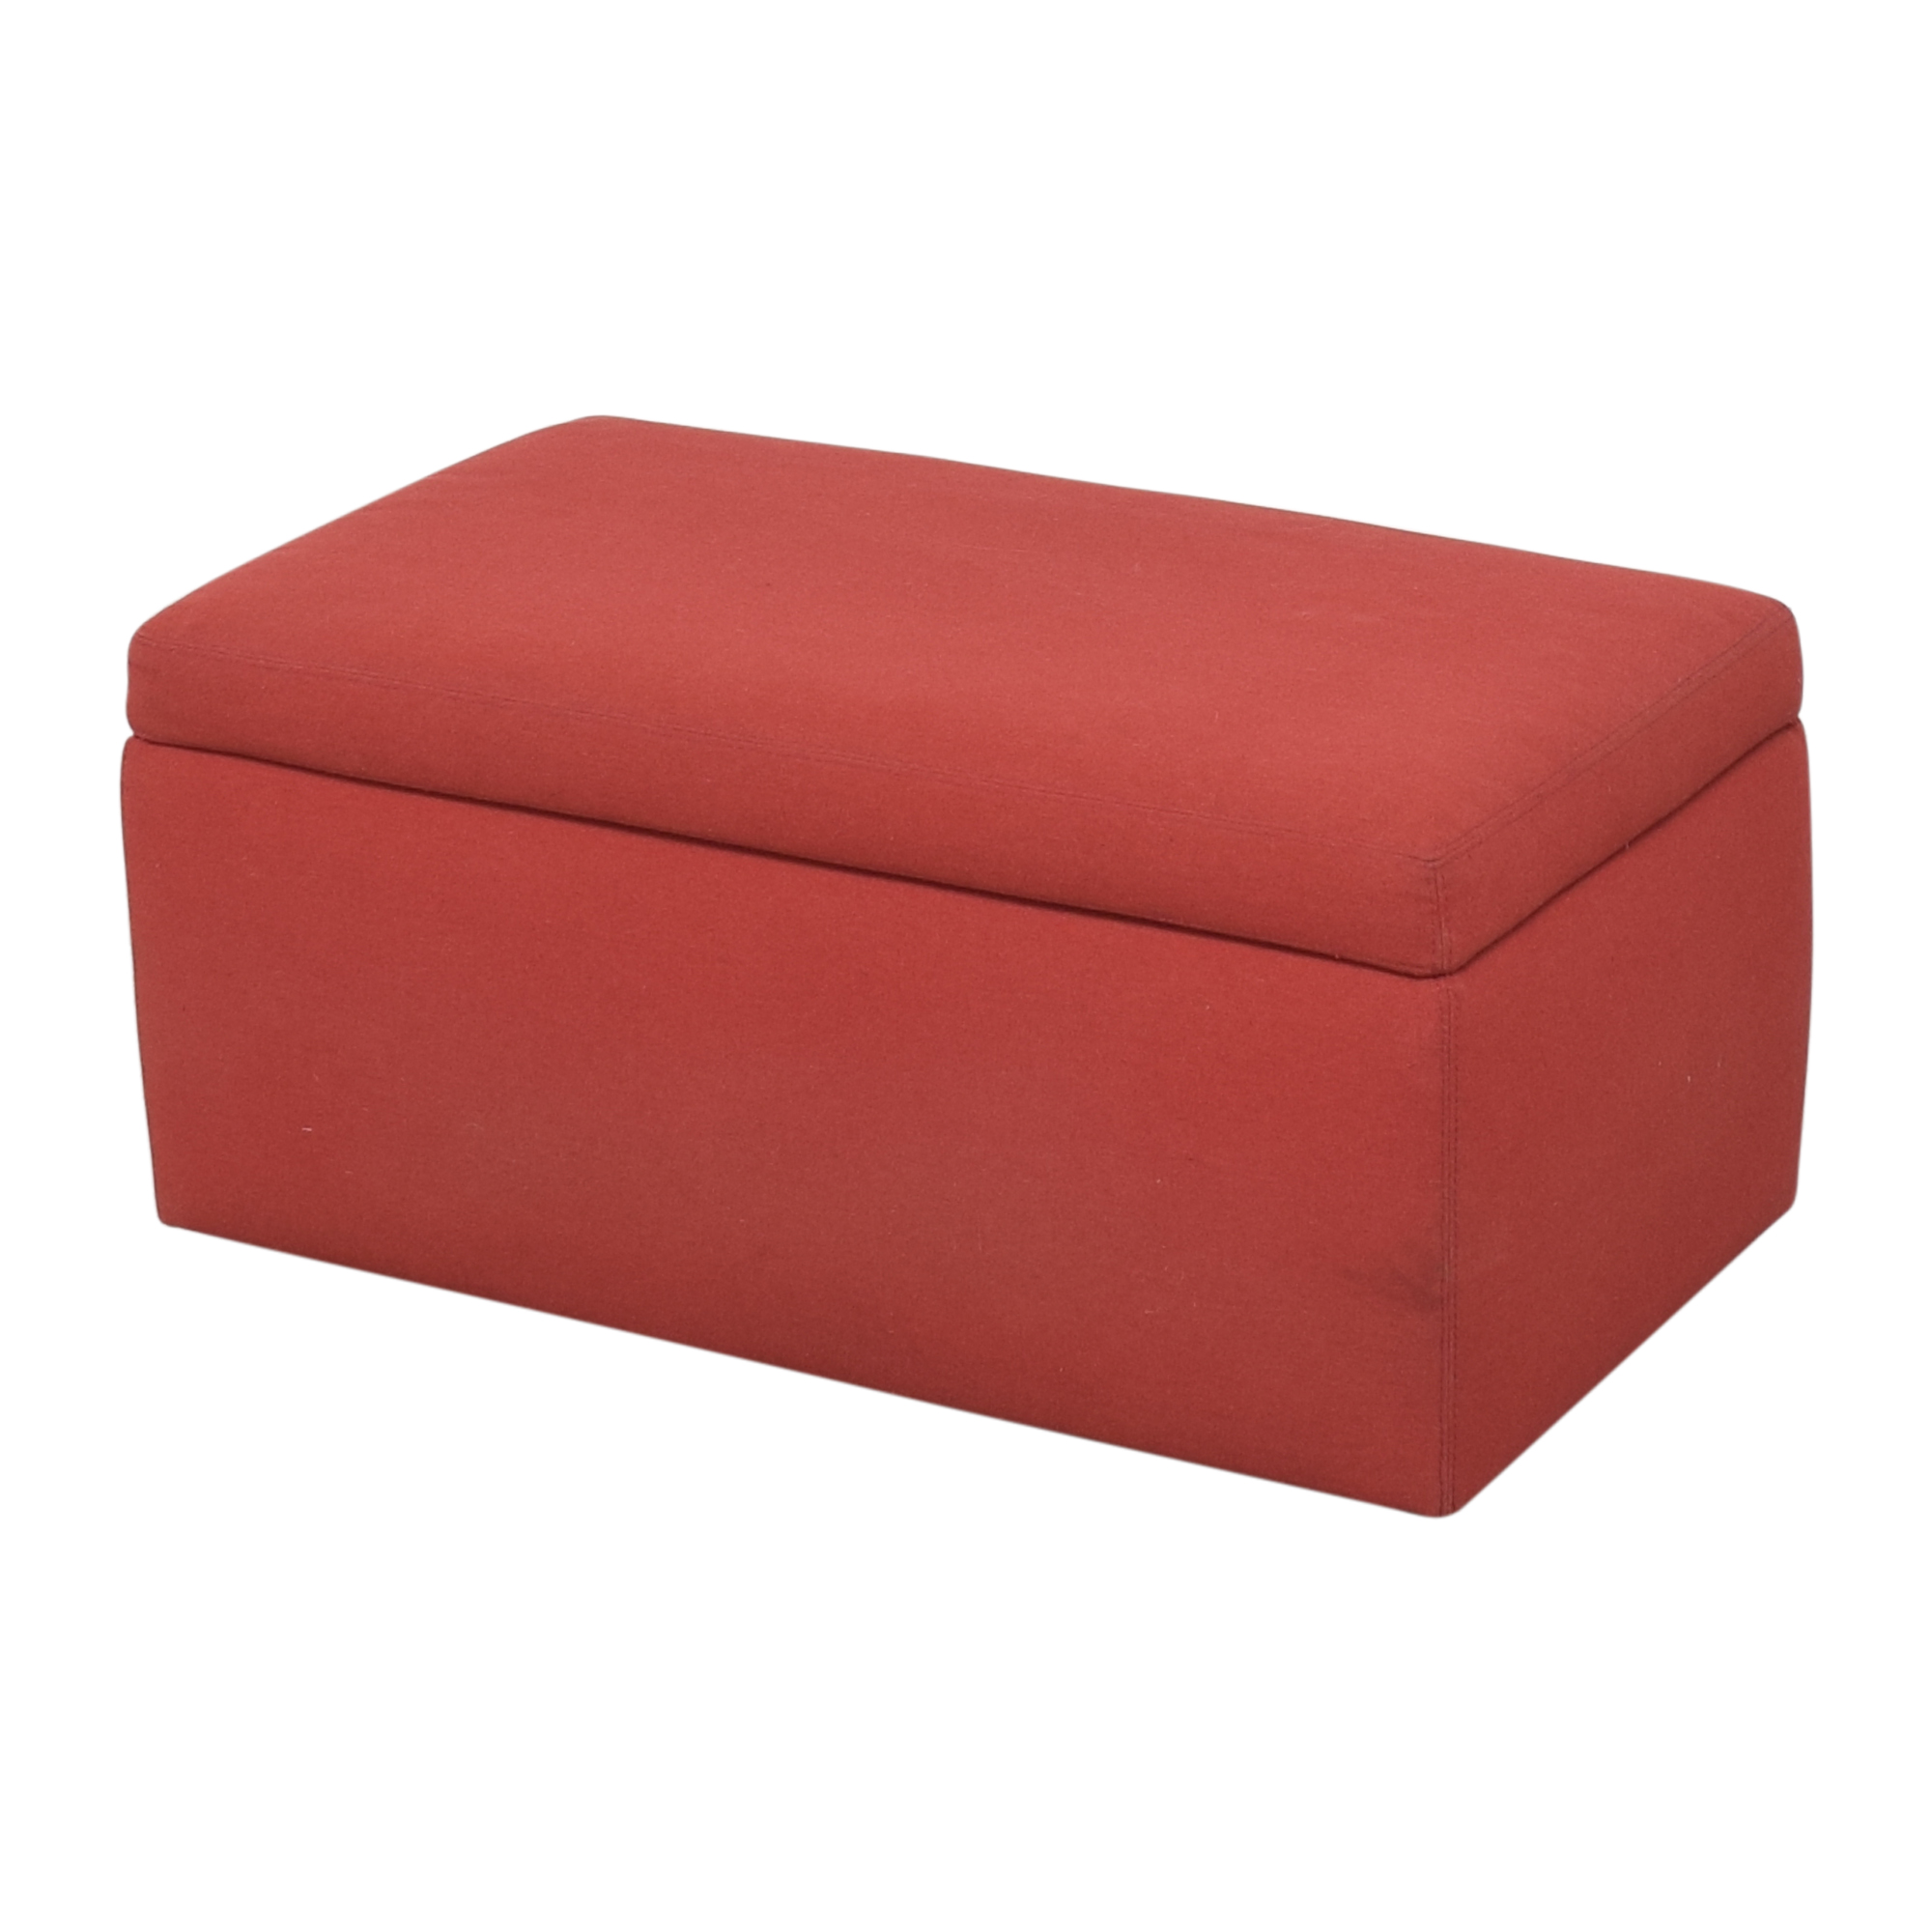 Room & Board Room & Board Tyler Storage Ottoman second hand